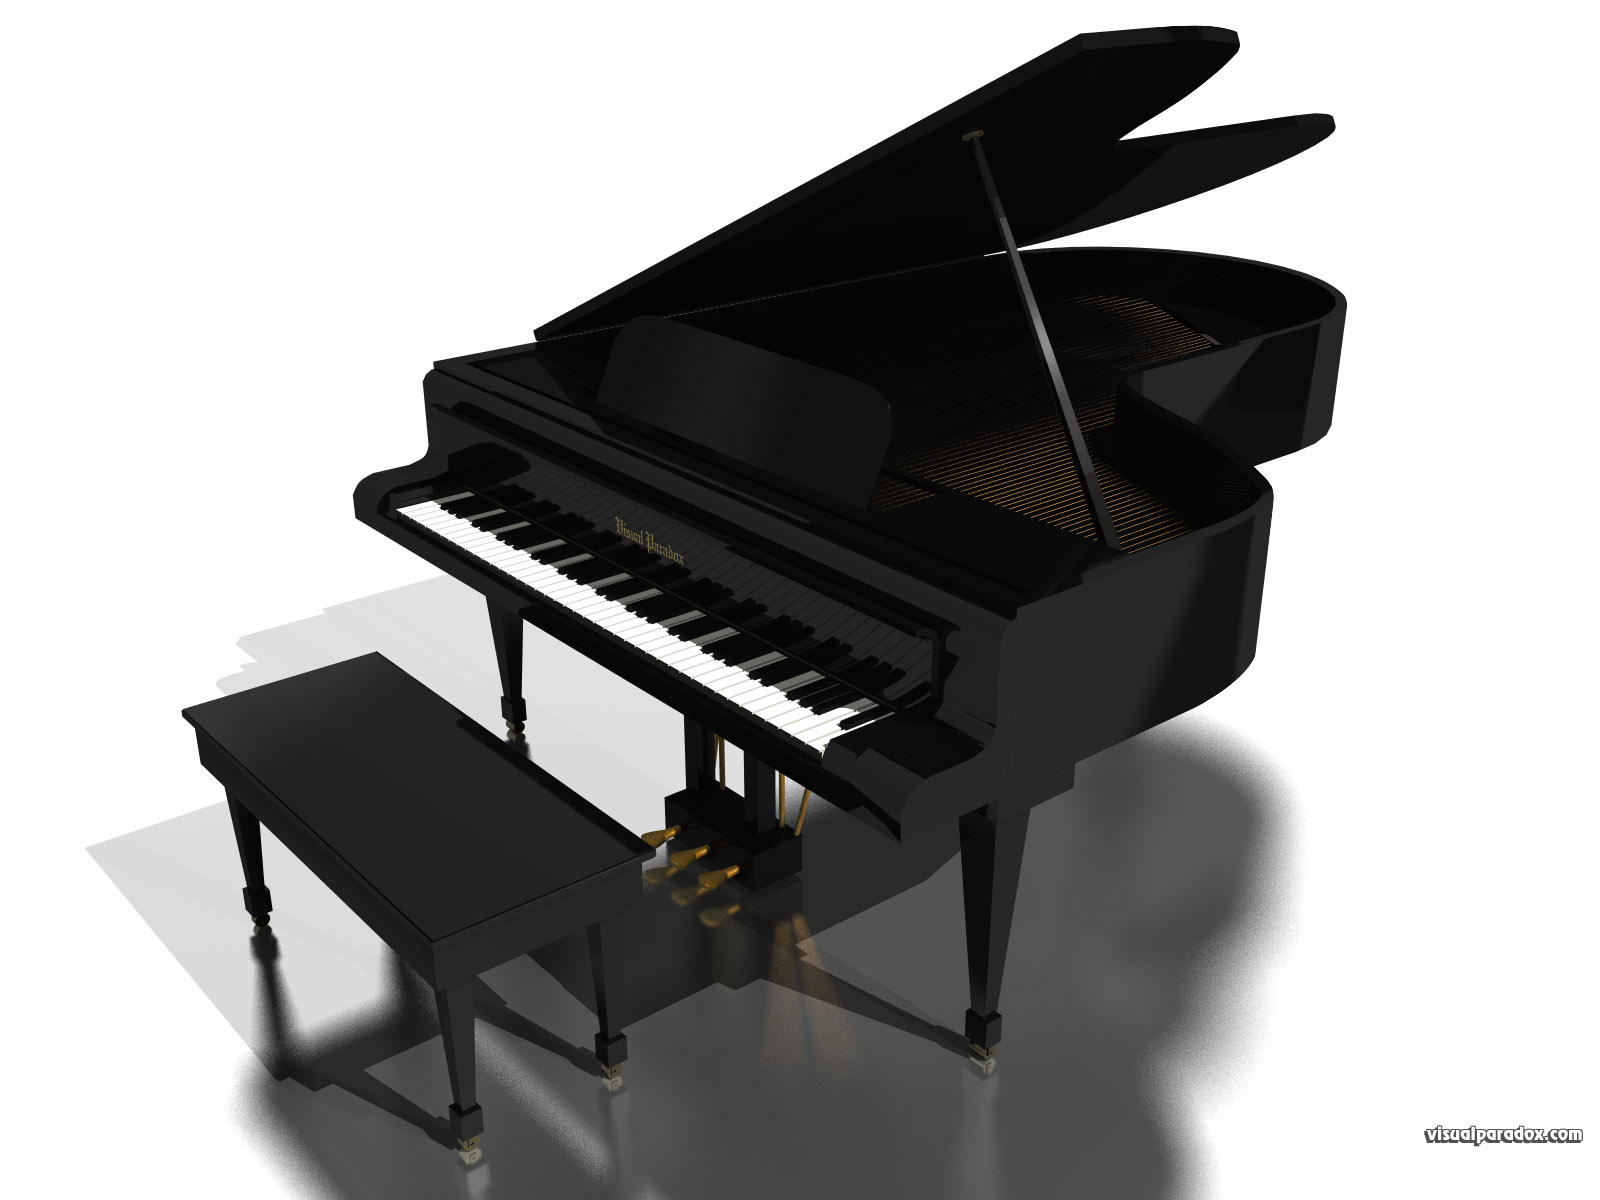 Visual paradox free 3d wallpaper 39 grand piano 39 1600x1200 for What size is a grand piano